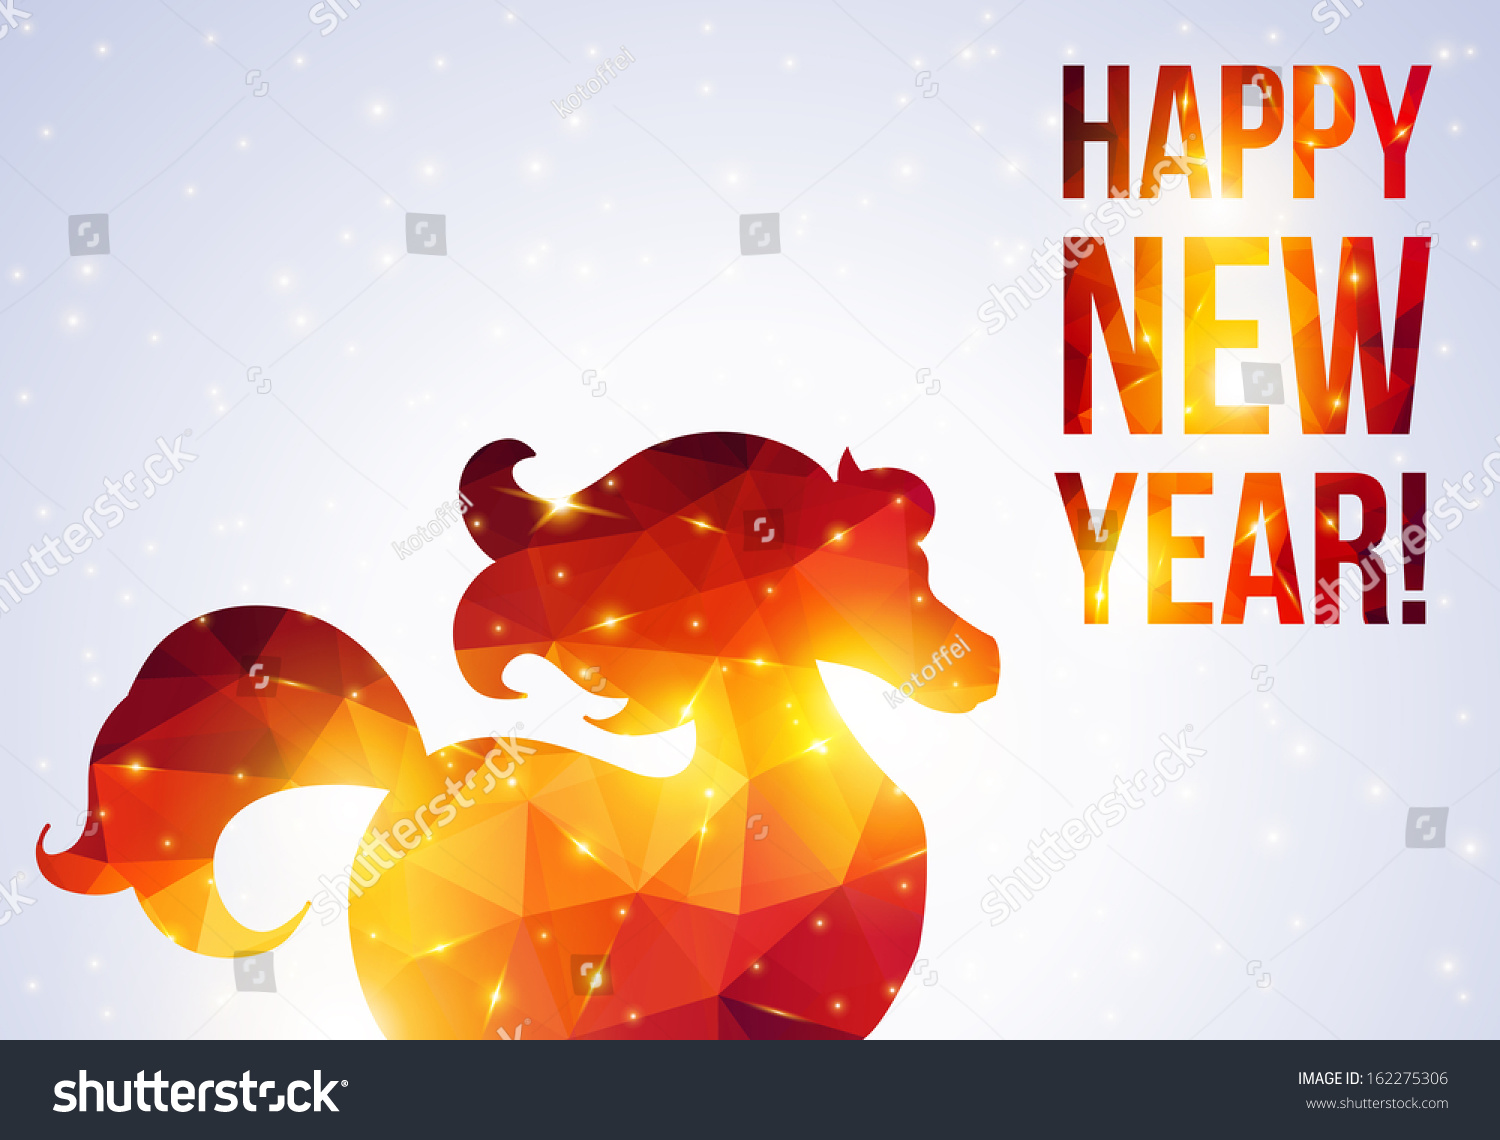 Happy new year 2014 greeting card stock vector 2018 162275306 happy new year 2014 greeting card year of horse vector illustration red horses m4hsunfo